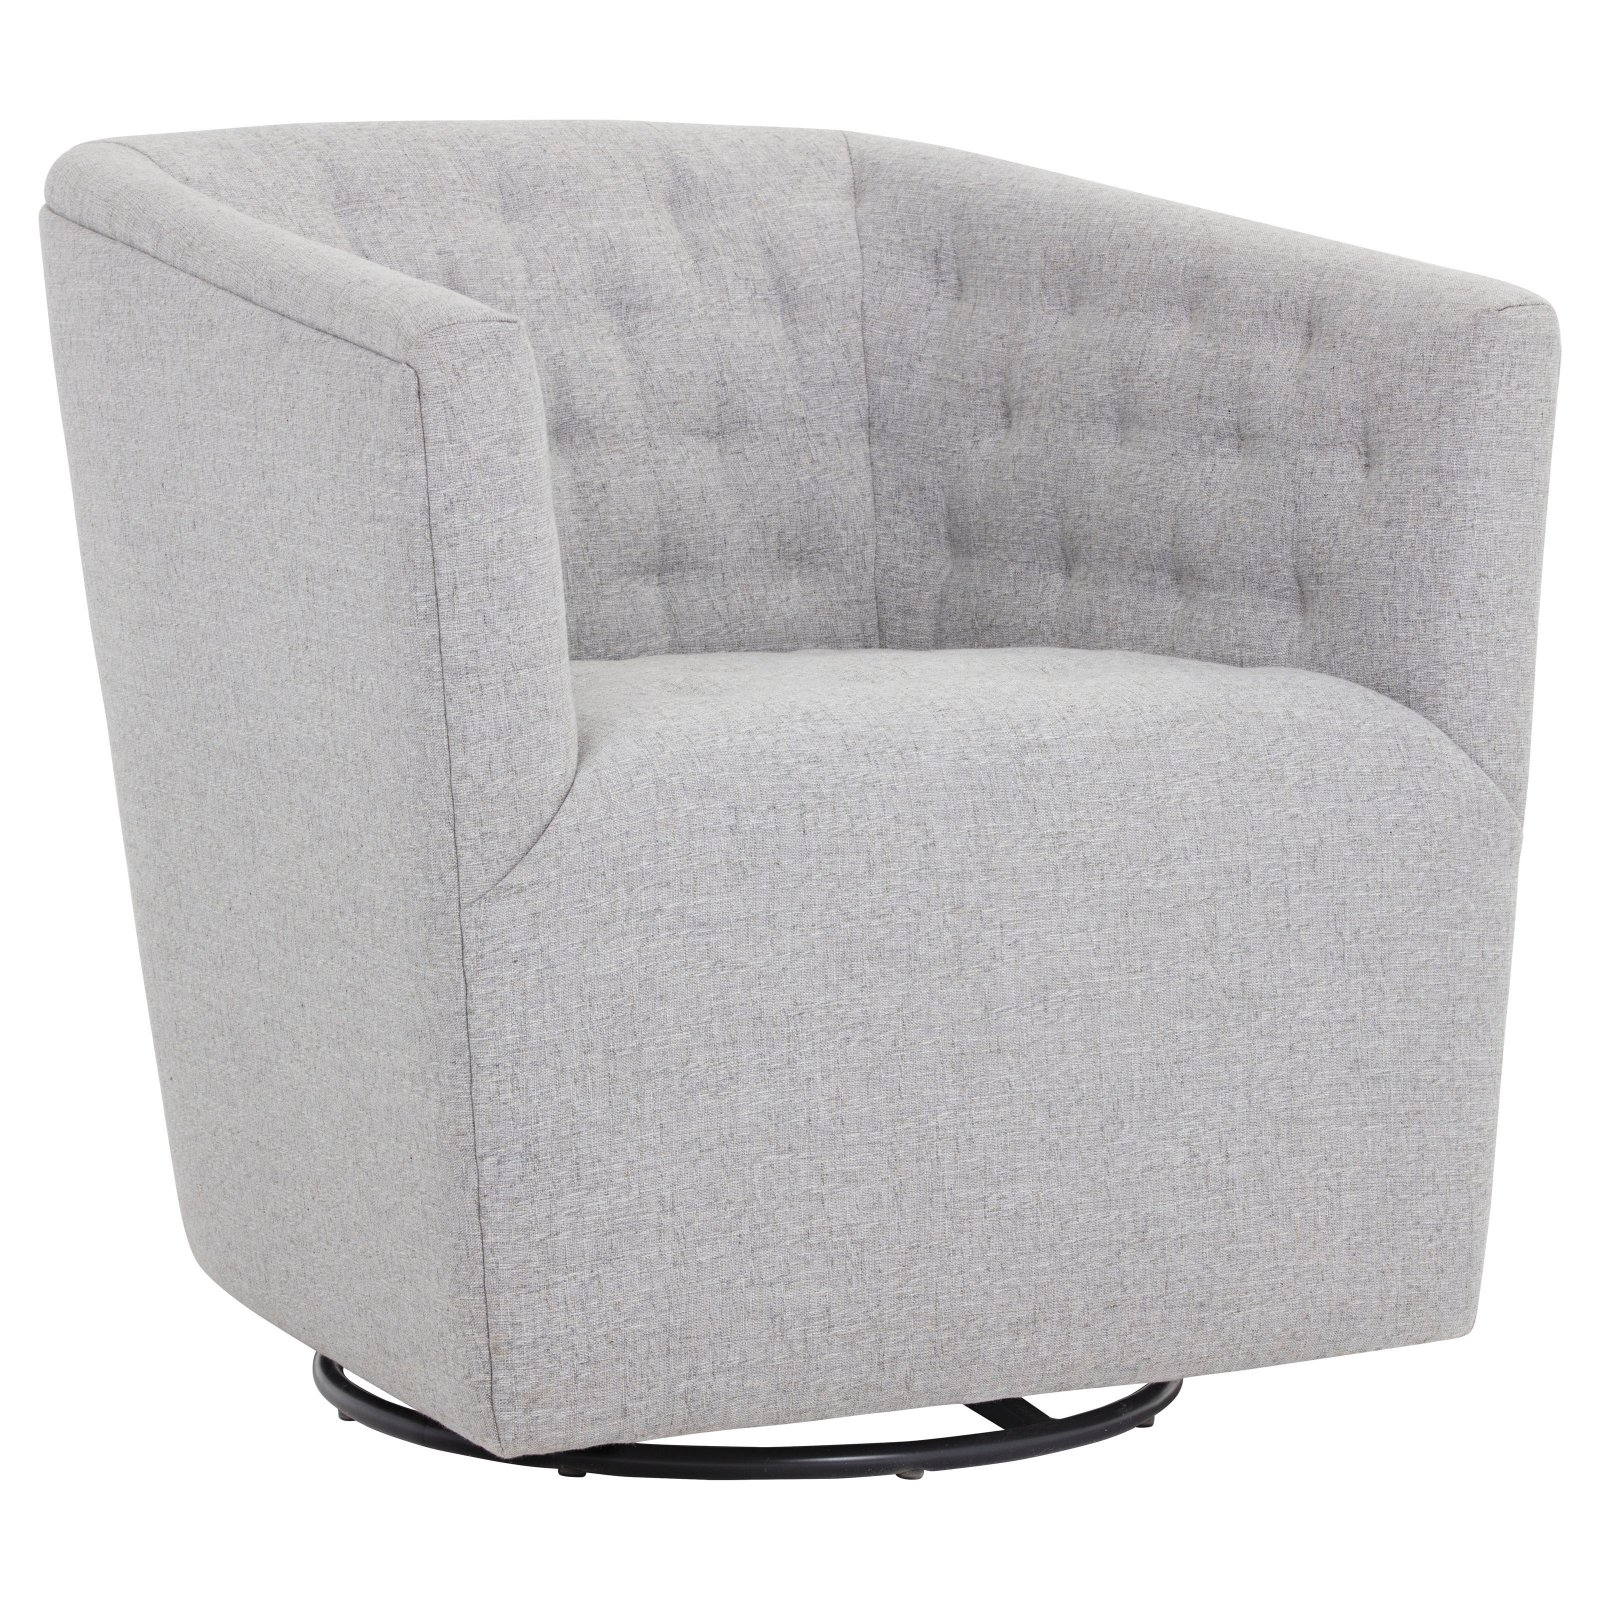 Sunpan Reeves Swivel Barrel Chair Marble | Swivel barrel ...